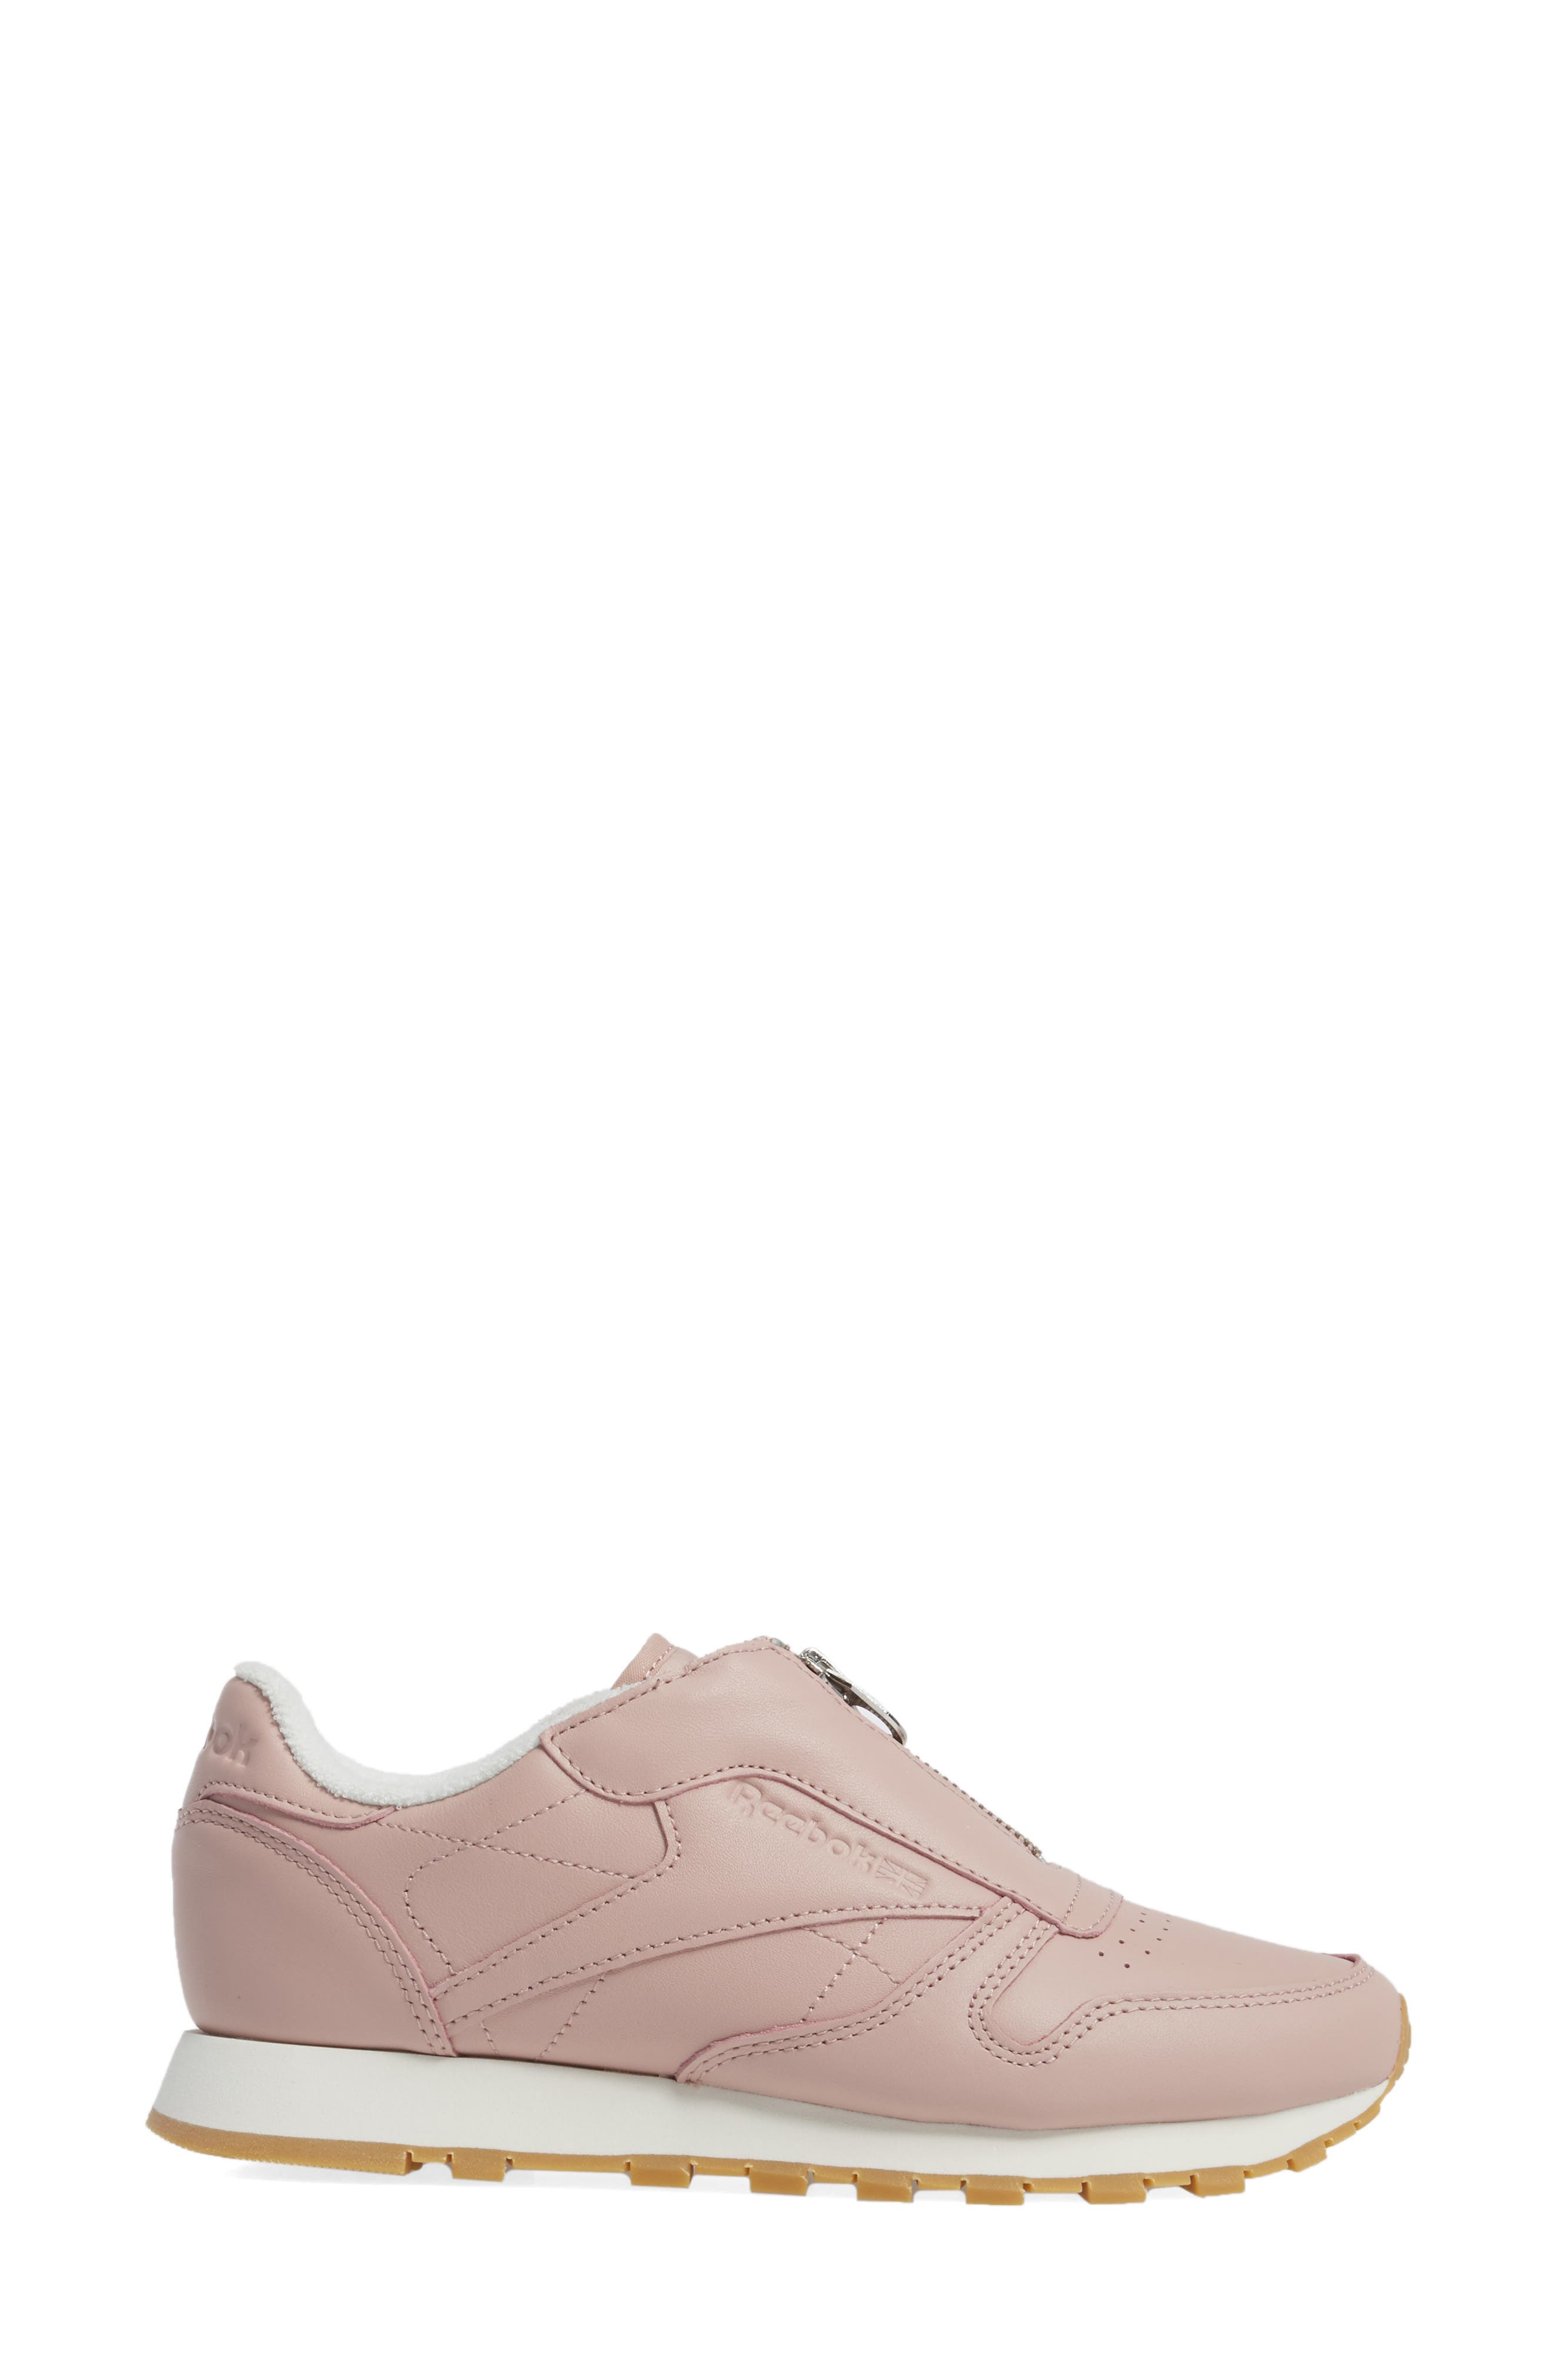 Classic Zip Sneaker,                             Alternate thumbnail 3, color,                             Shell Pink/ Chalk/ Silver